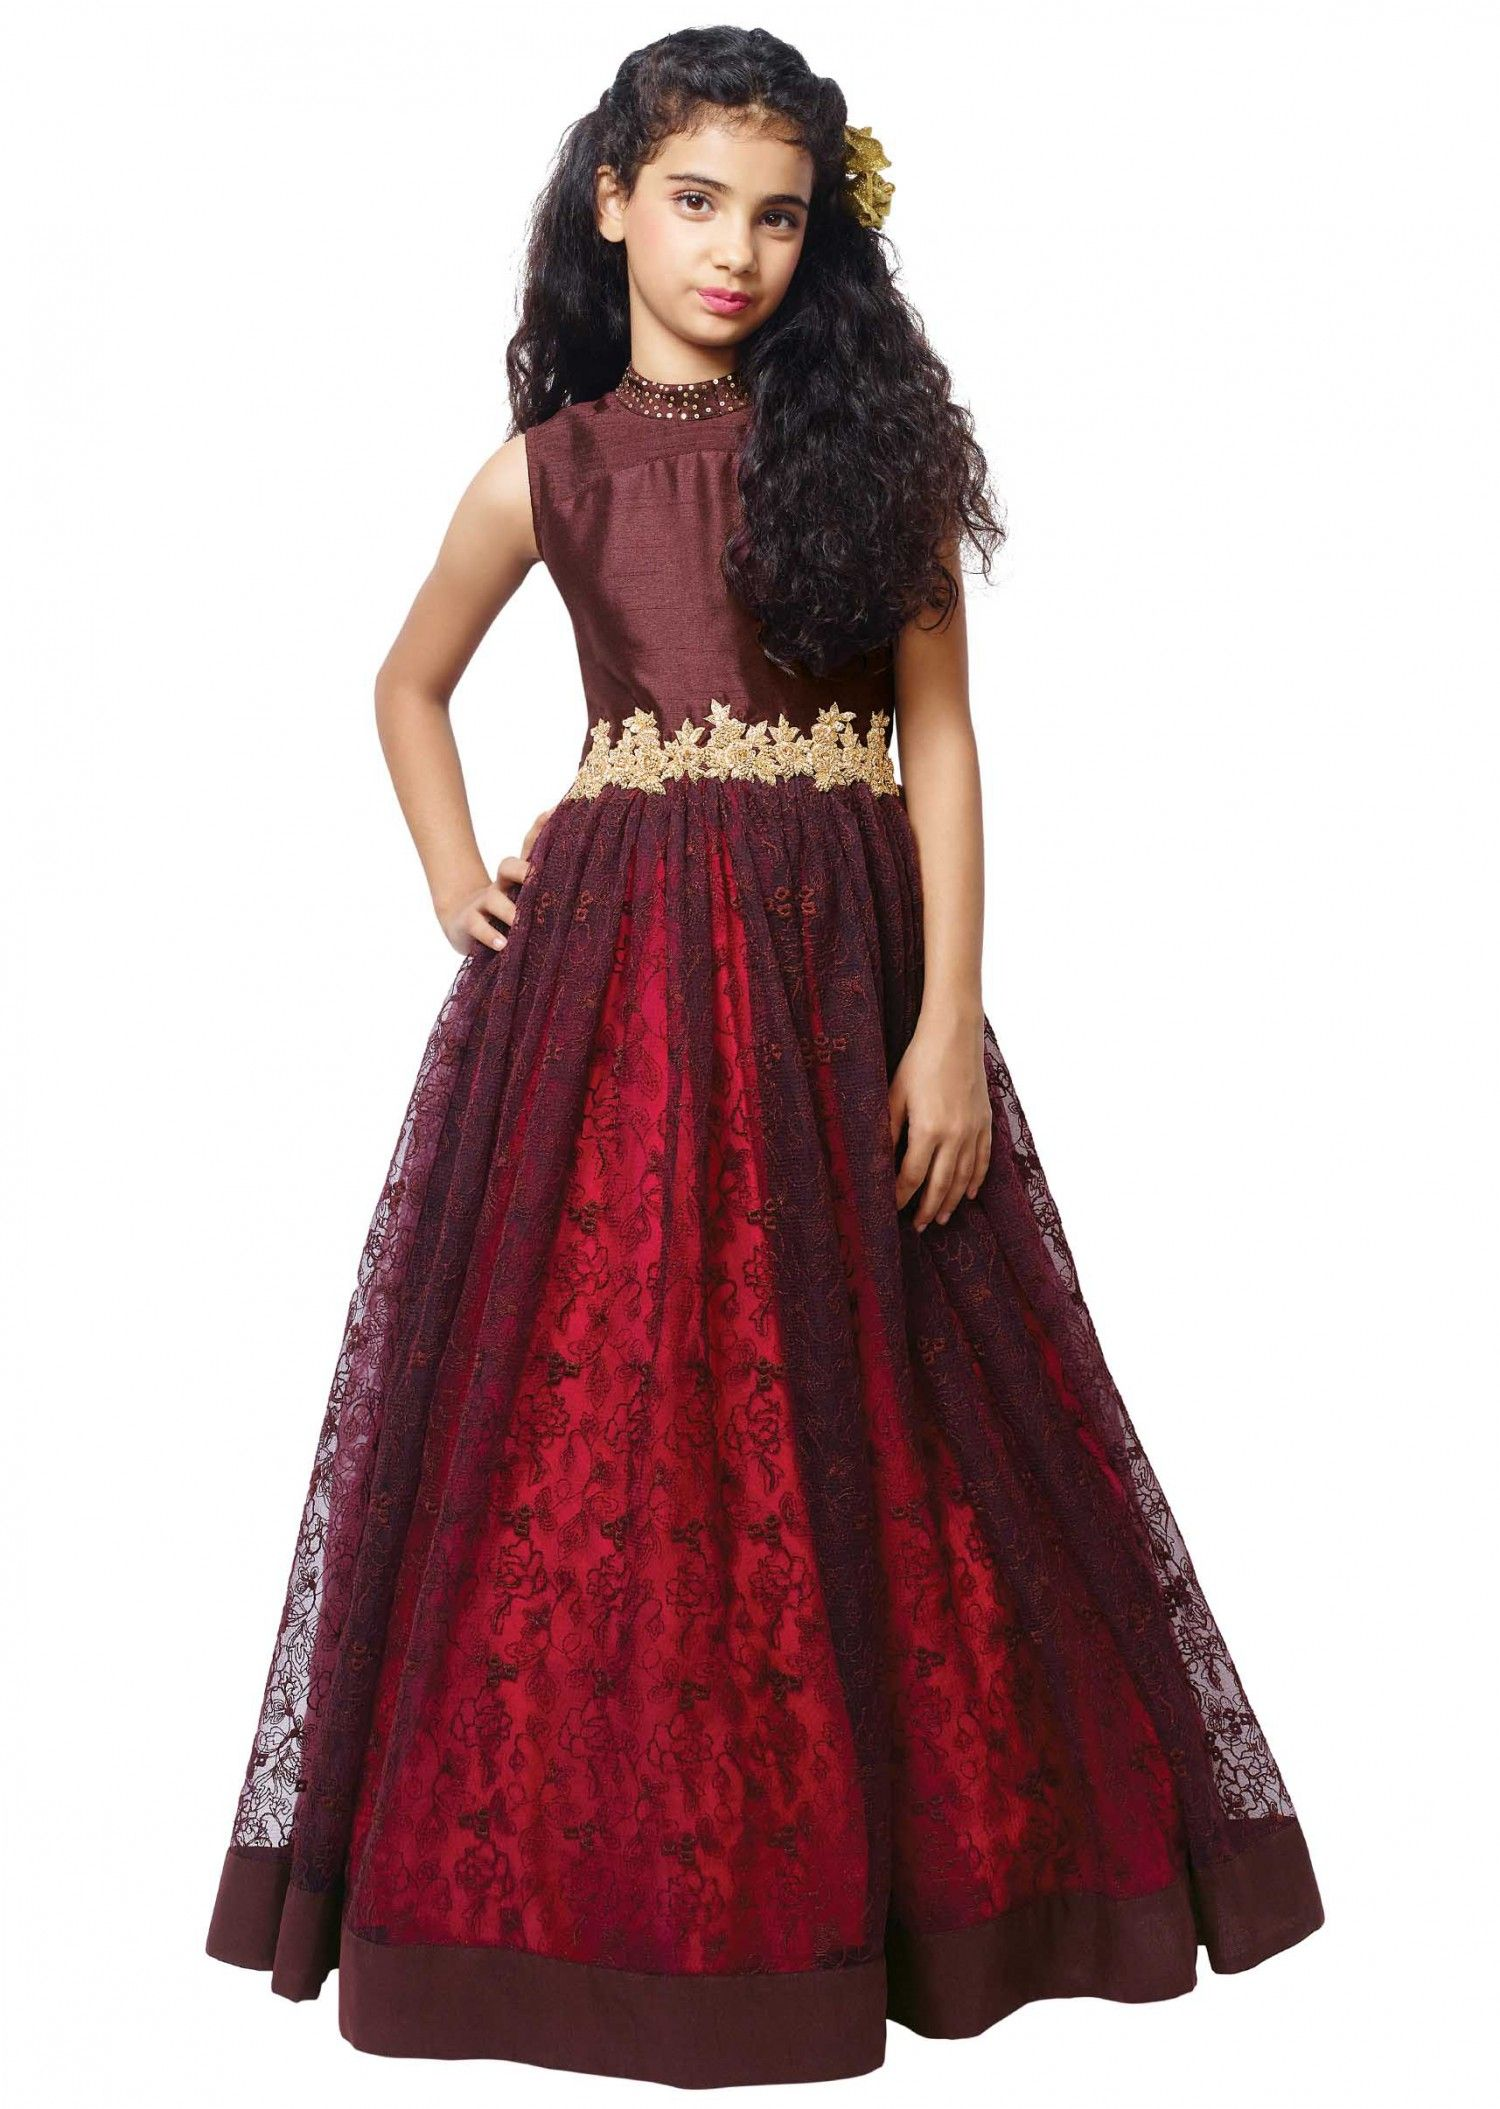 5141647bf5cf Rasal Net + Hand Work Kids Wear Gown - More Details Contact No....  +919537510757.